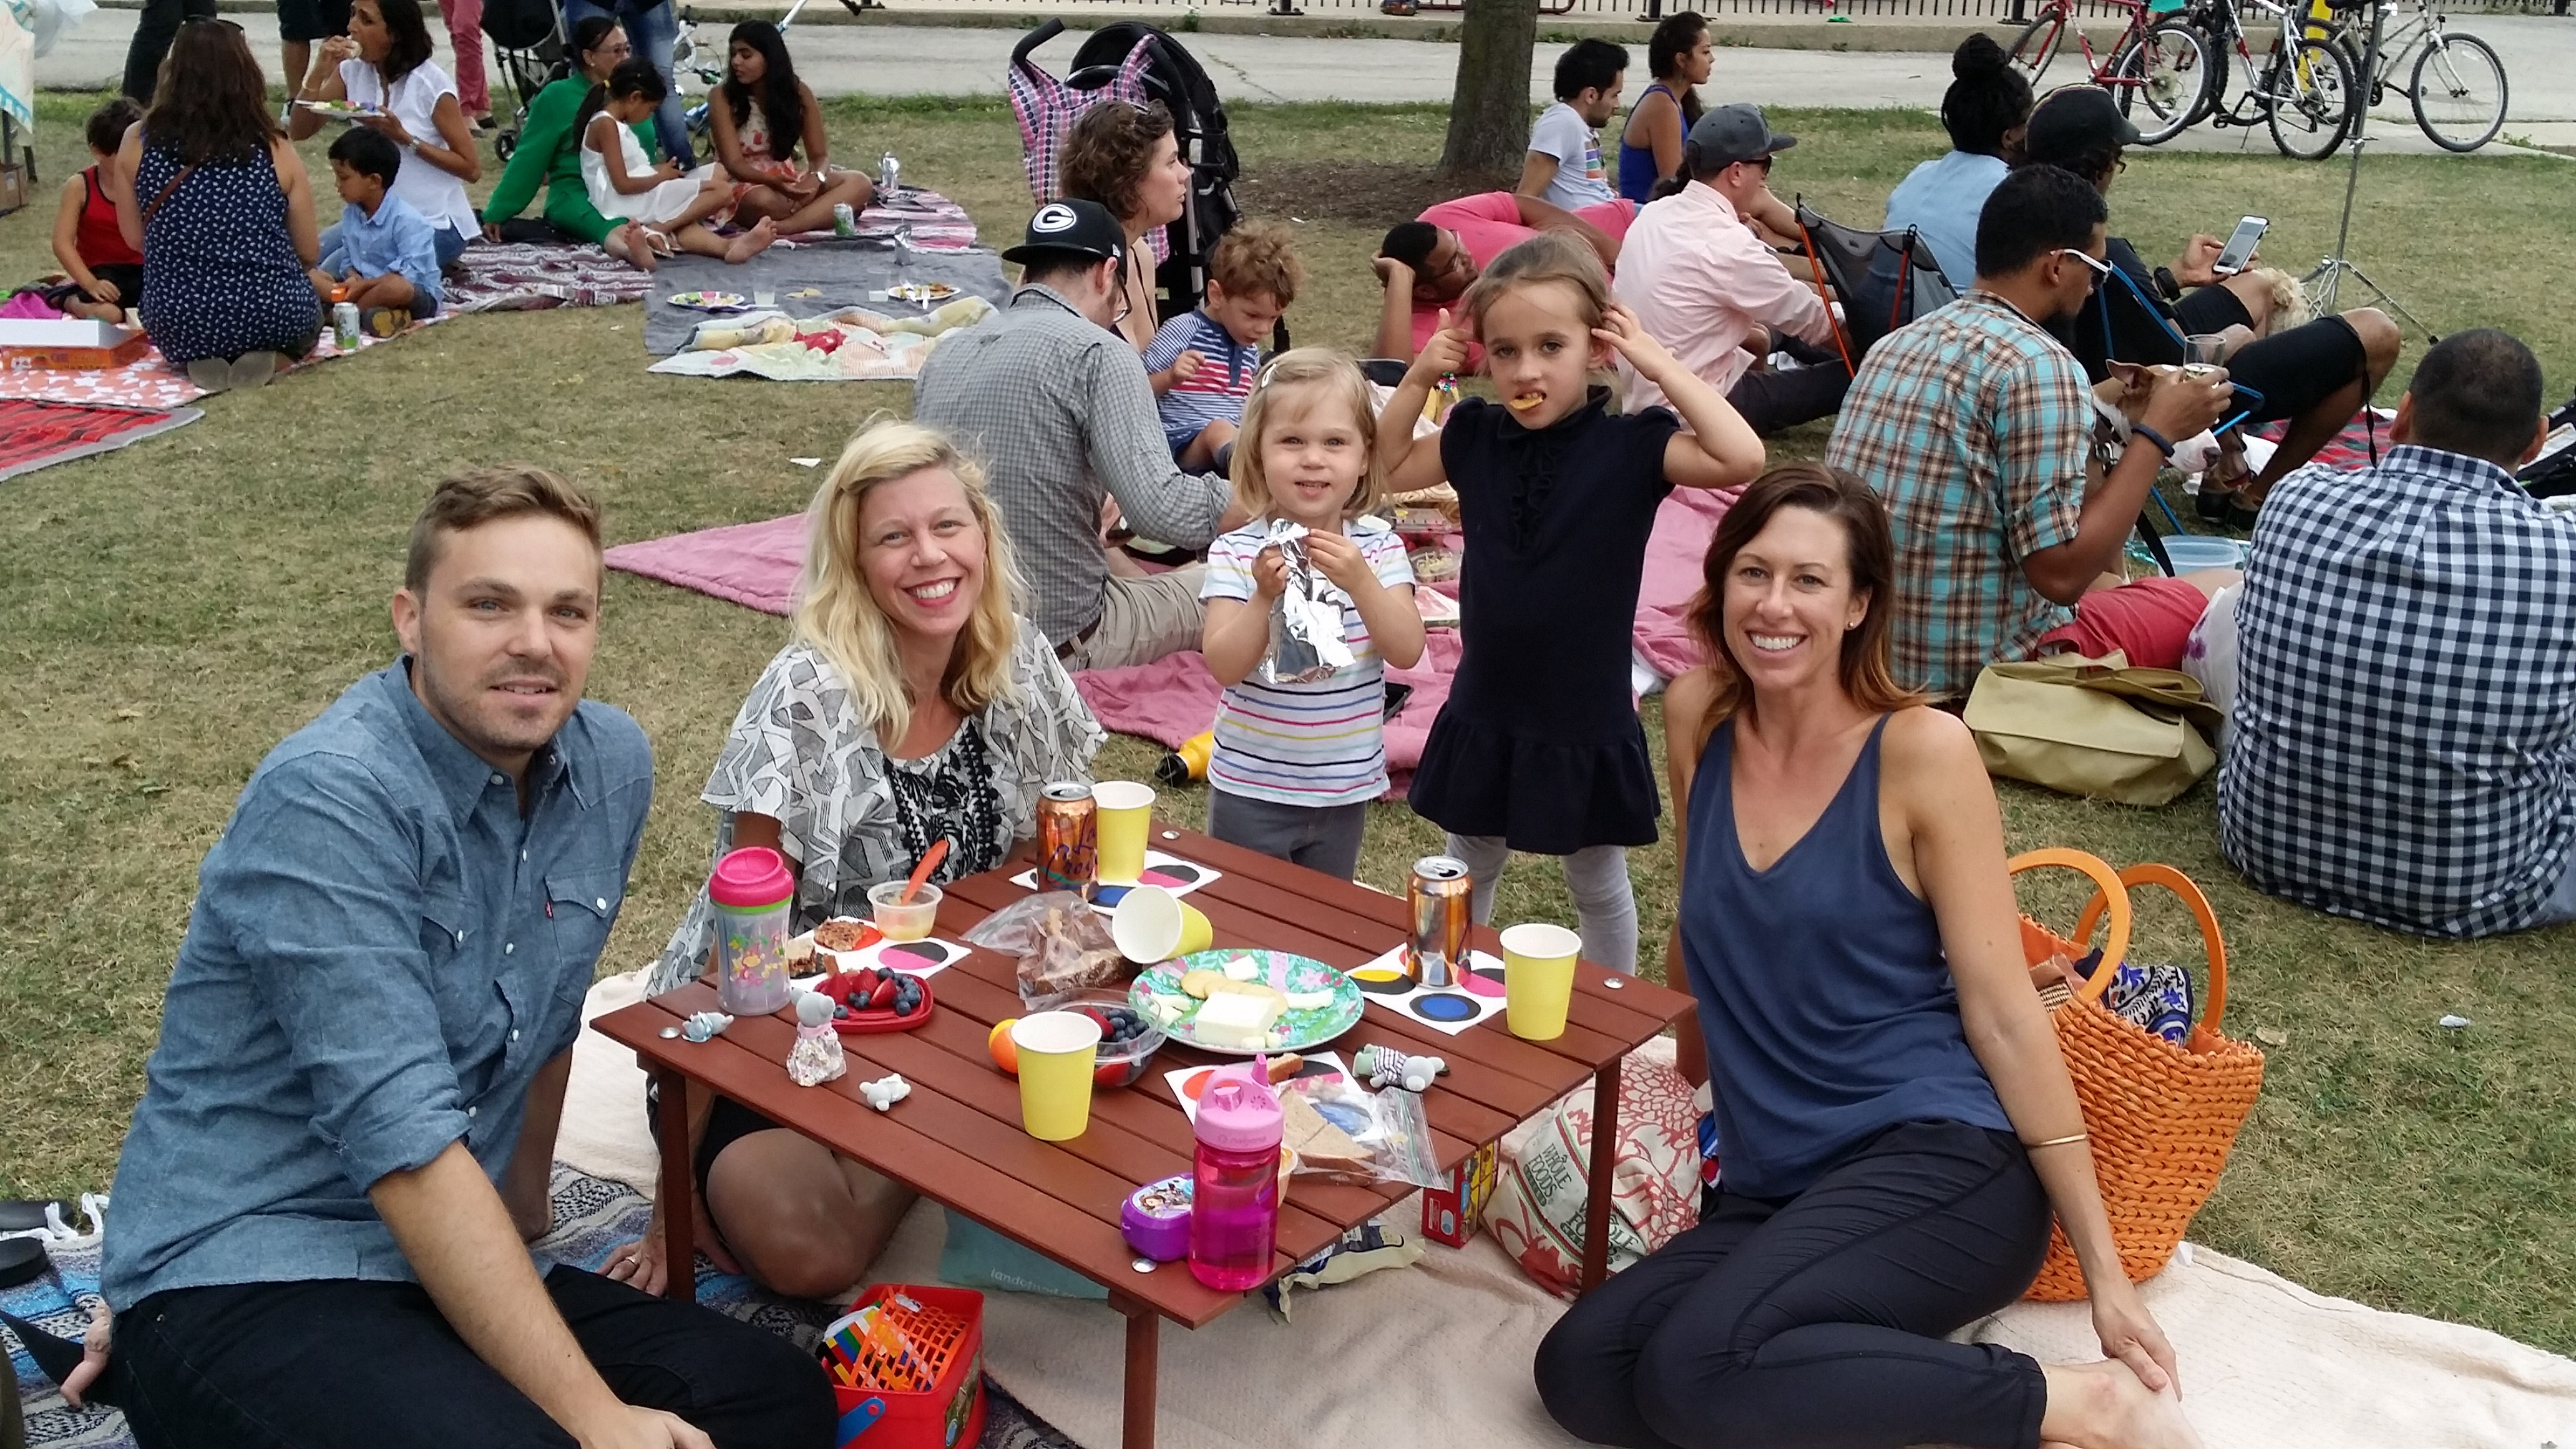 Smith Park host Contrabanda Latin Band. pictured L-R: Community members Patrick, Kerry, Lucy, Flo, and Stacey enjoy the summer breeze and great music at Smith Park.